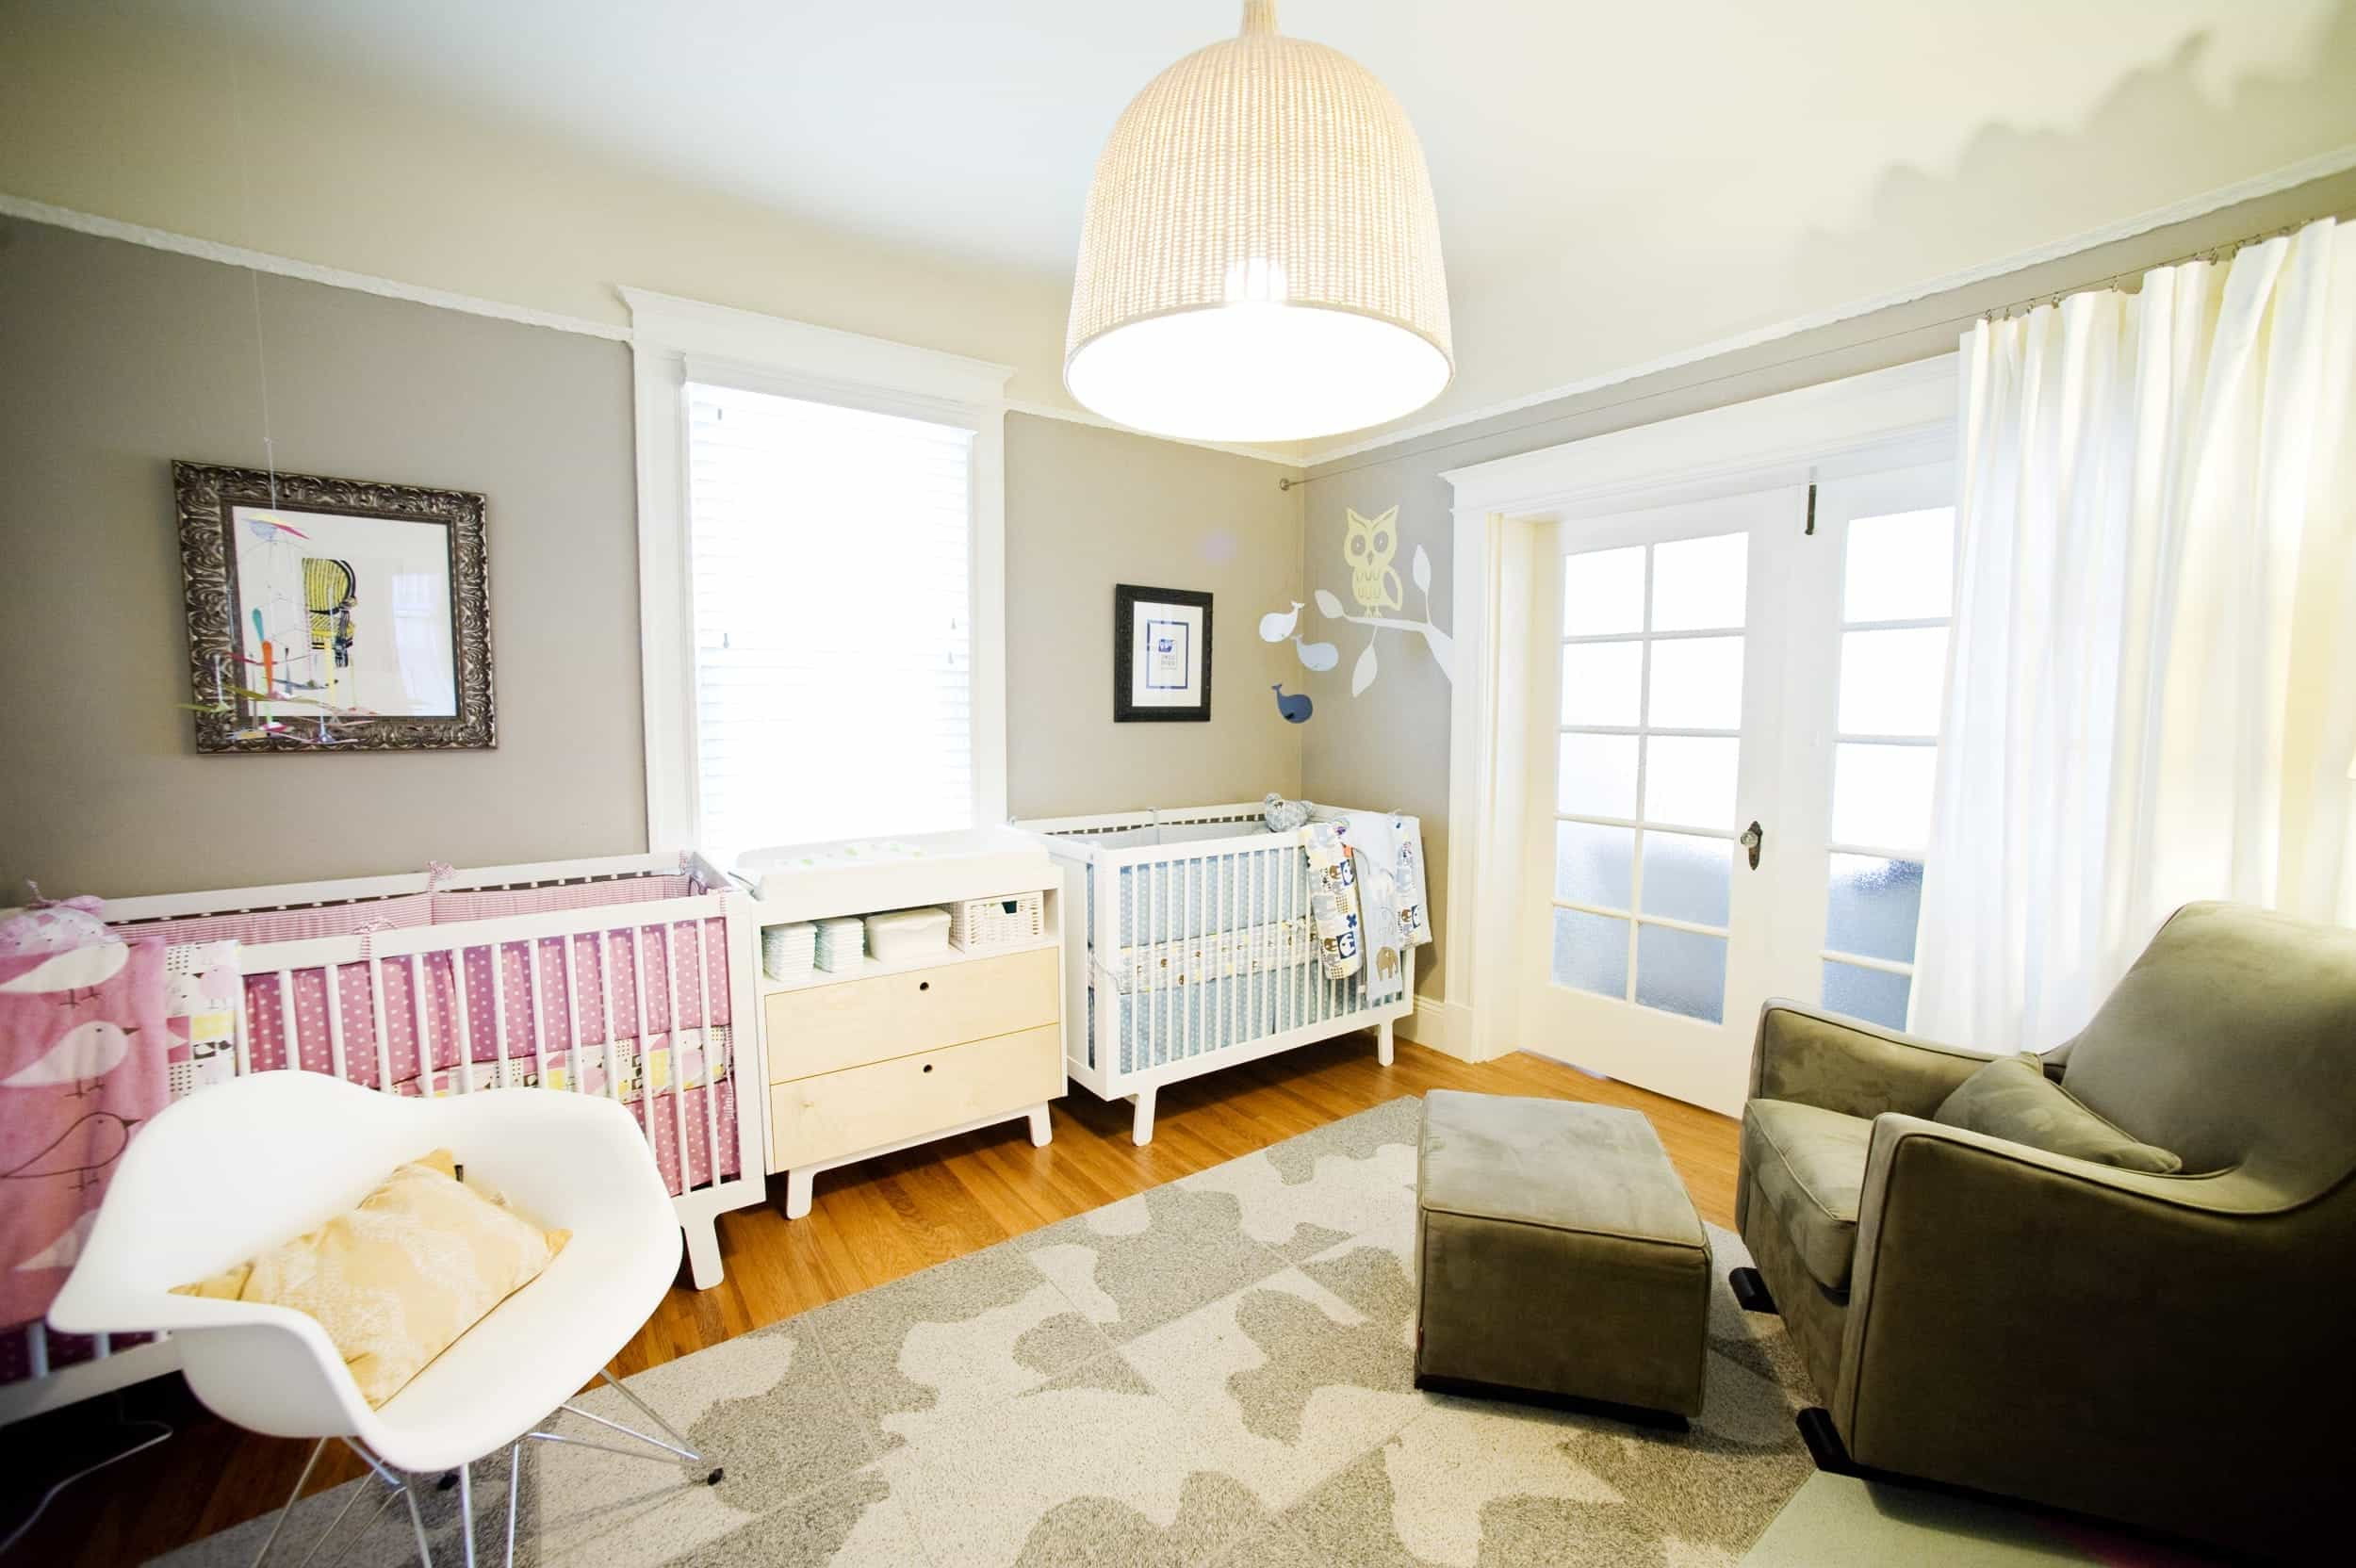 Modern Baby Bedroom For Two That's Cozy And Cool (Image 15 of 33)